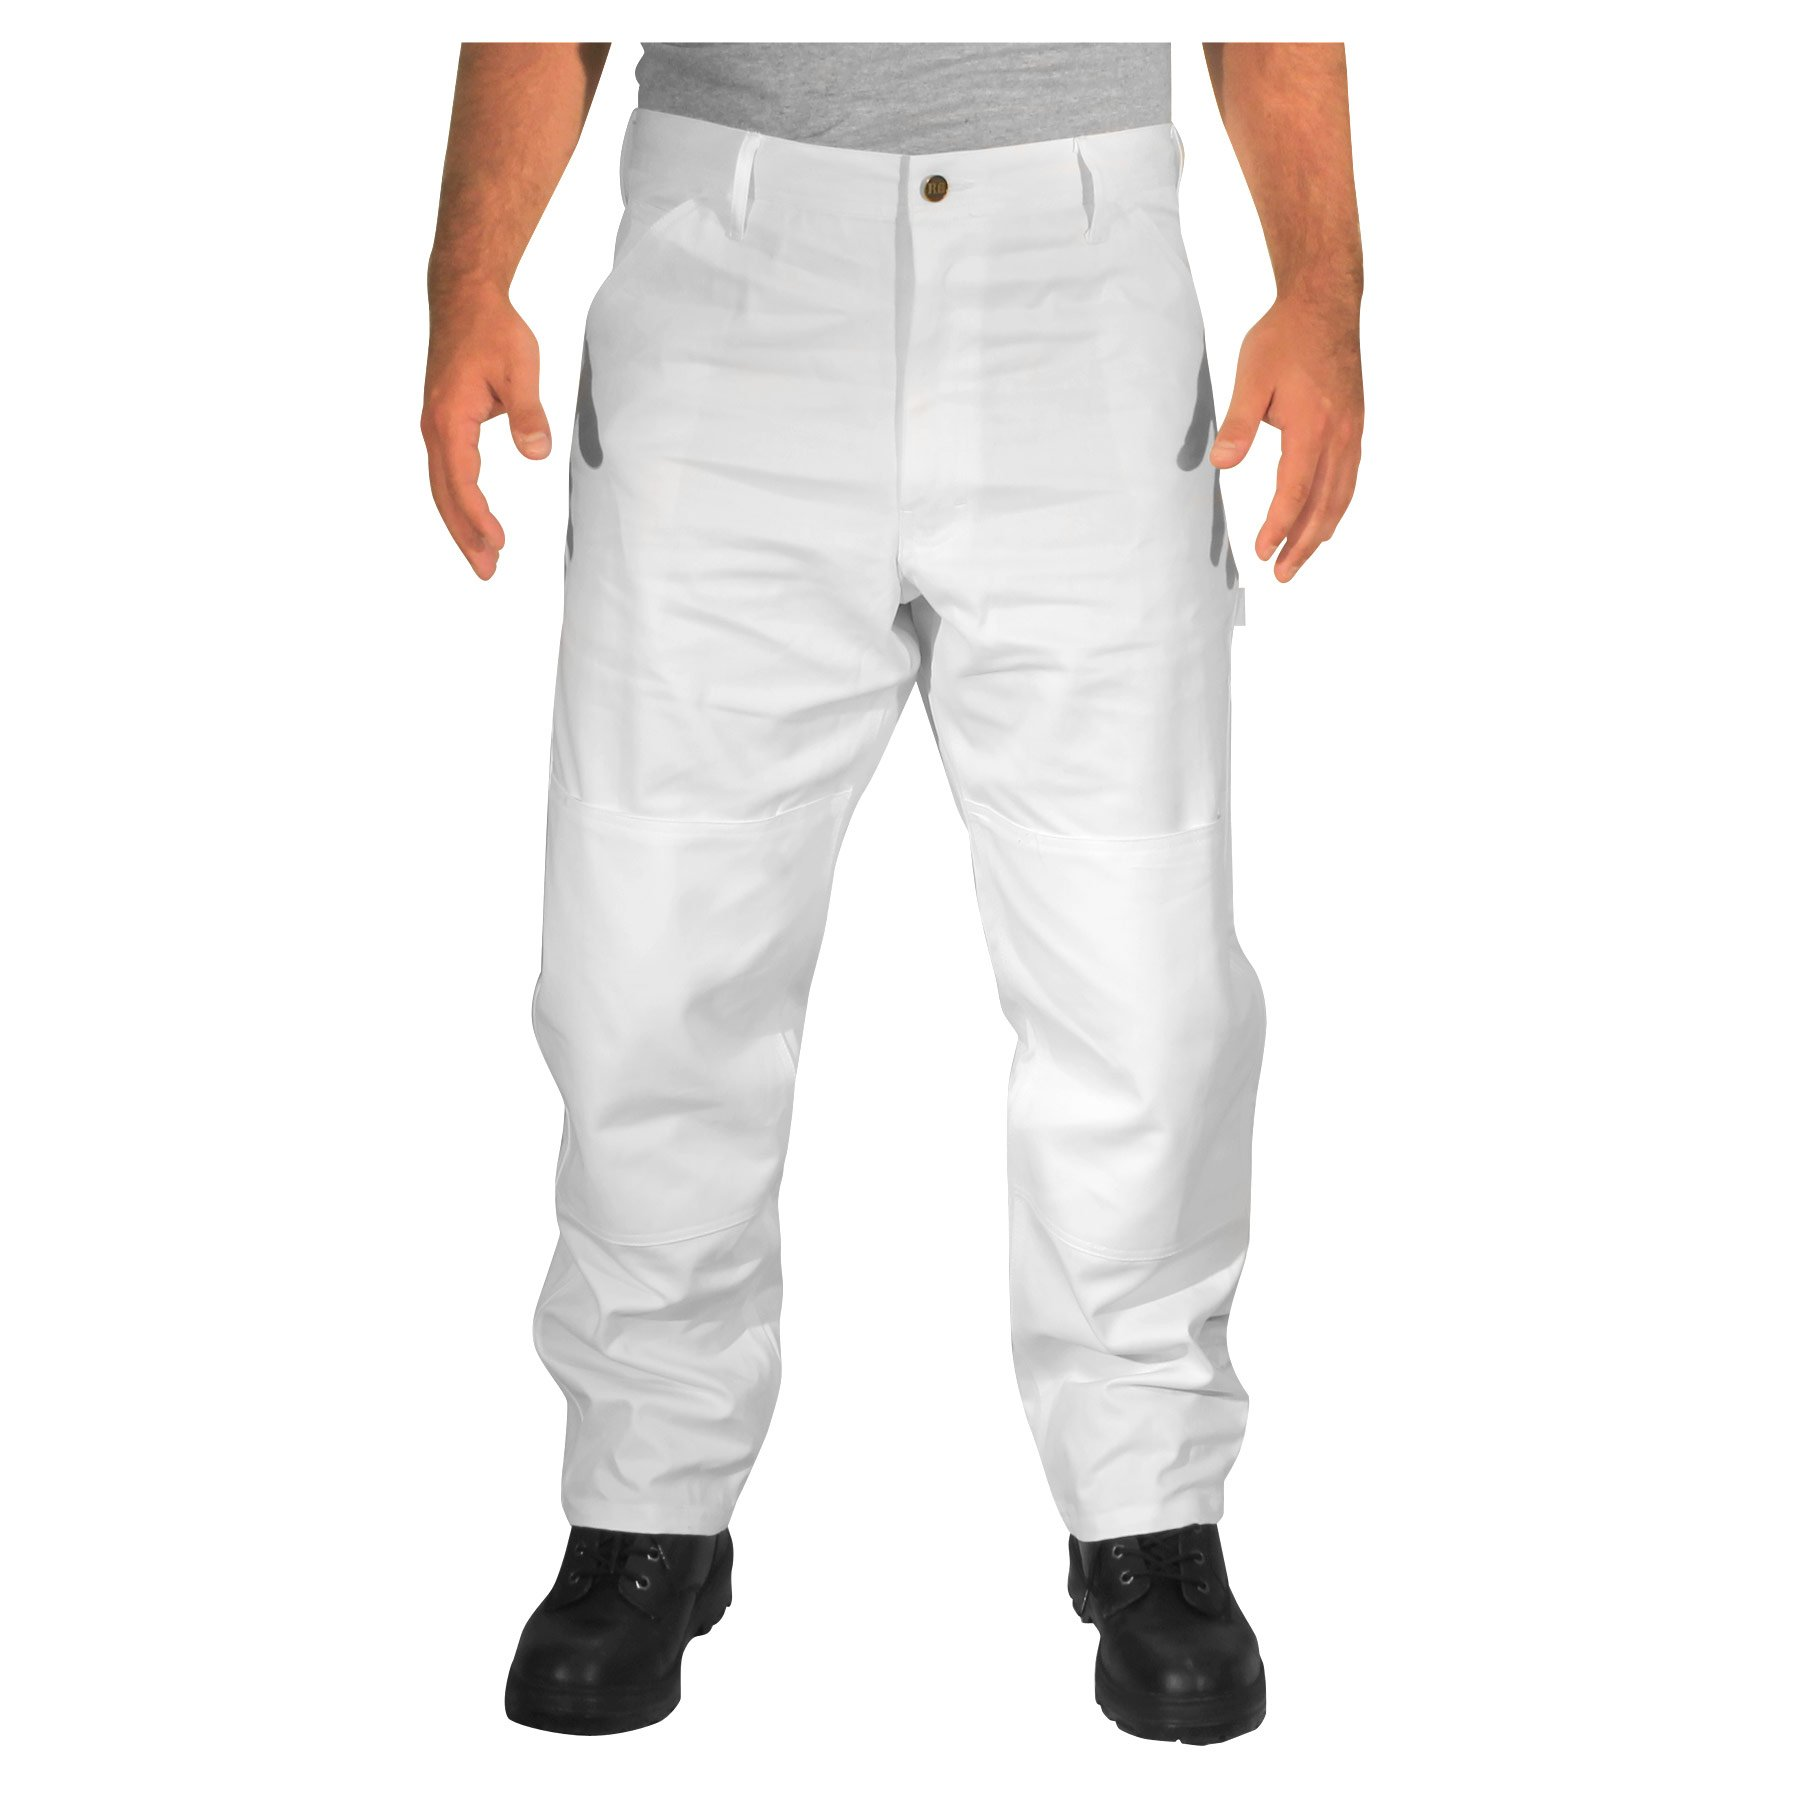 Rugged Blue CSGPTWP1000025168-WHT-48X36 Double Knee Painters Pants, English, Cotton, 48 x 36, White